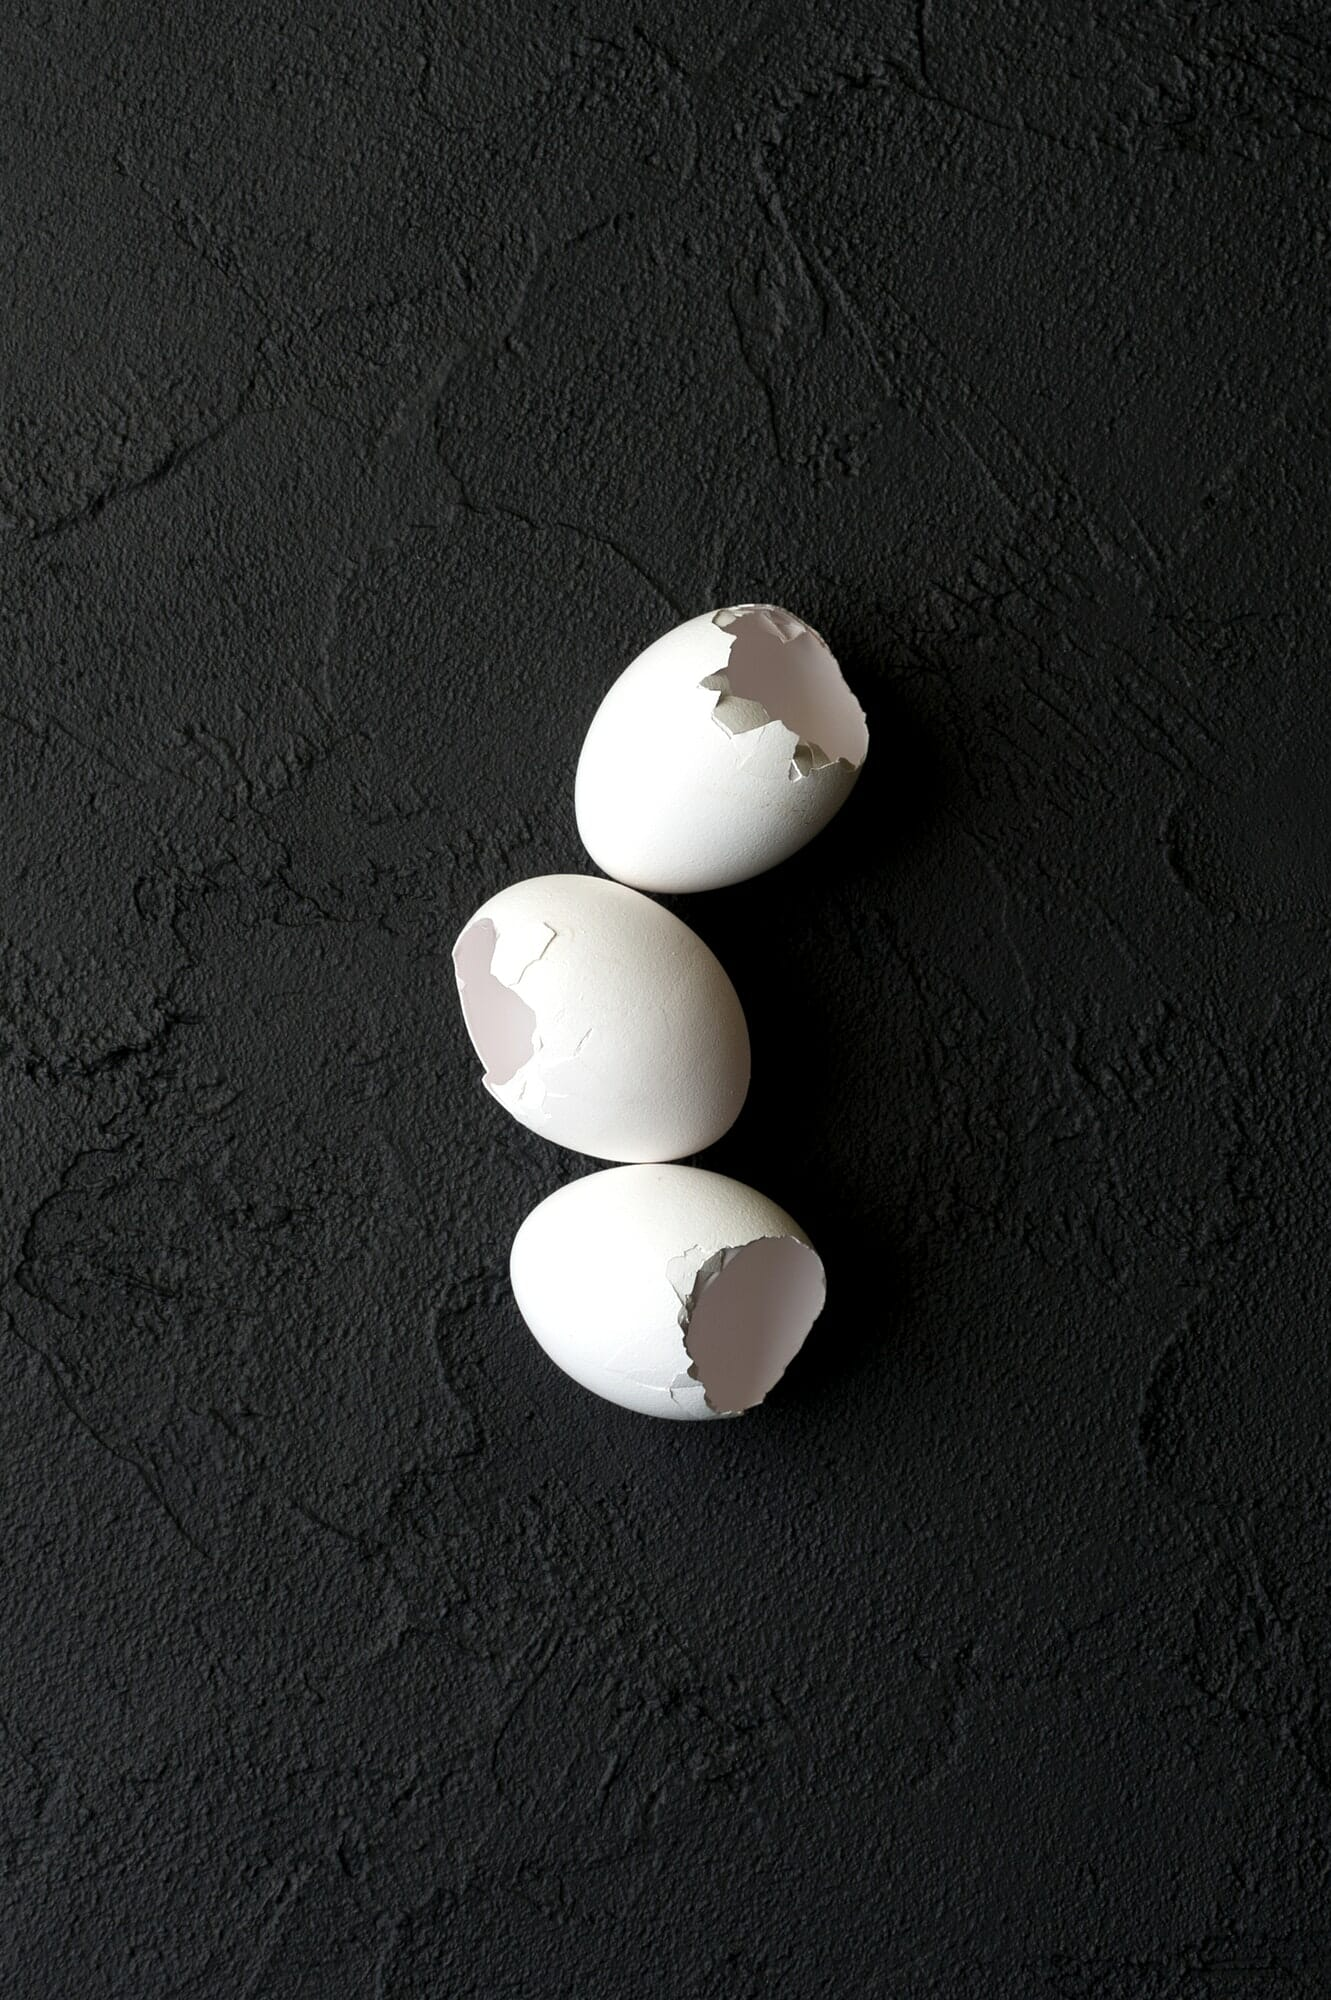 Shell from white chicken eggs on a black textured background.